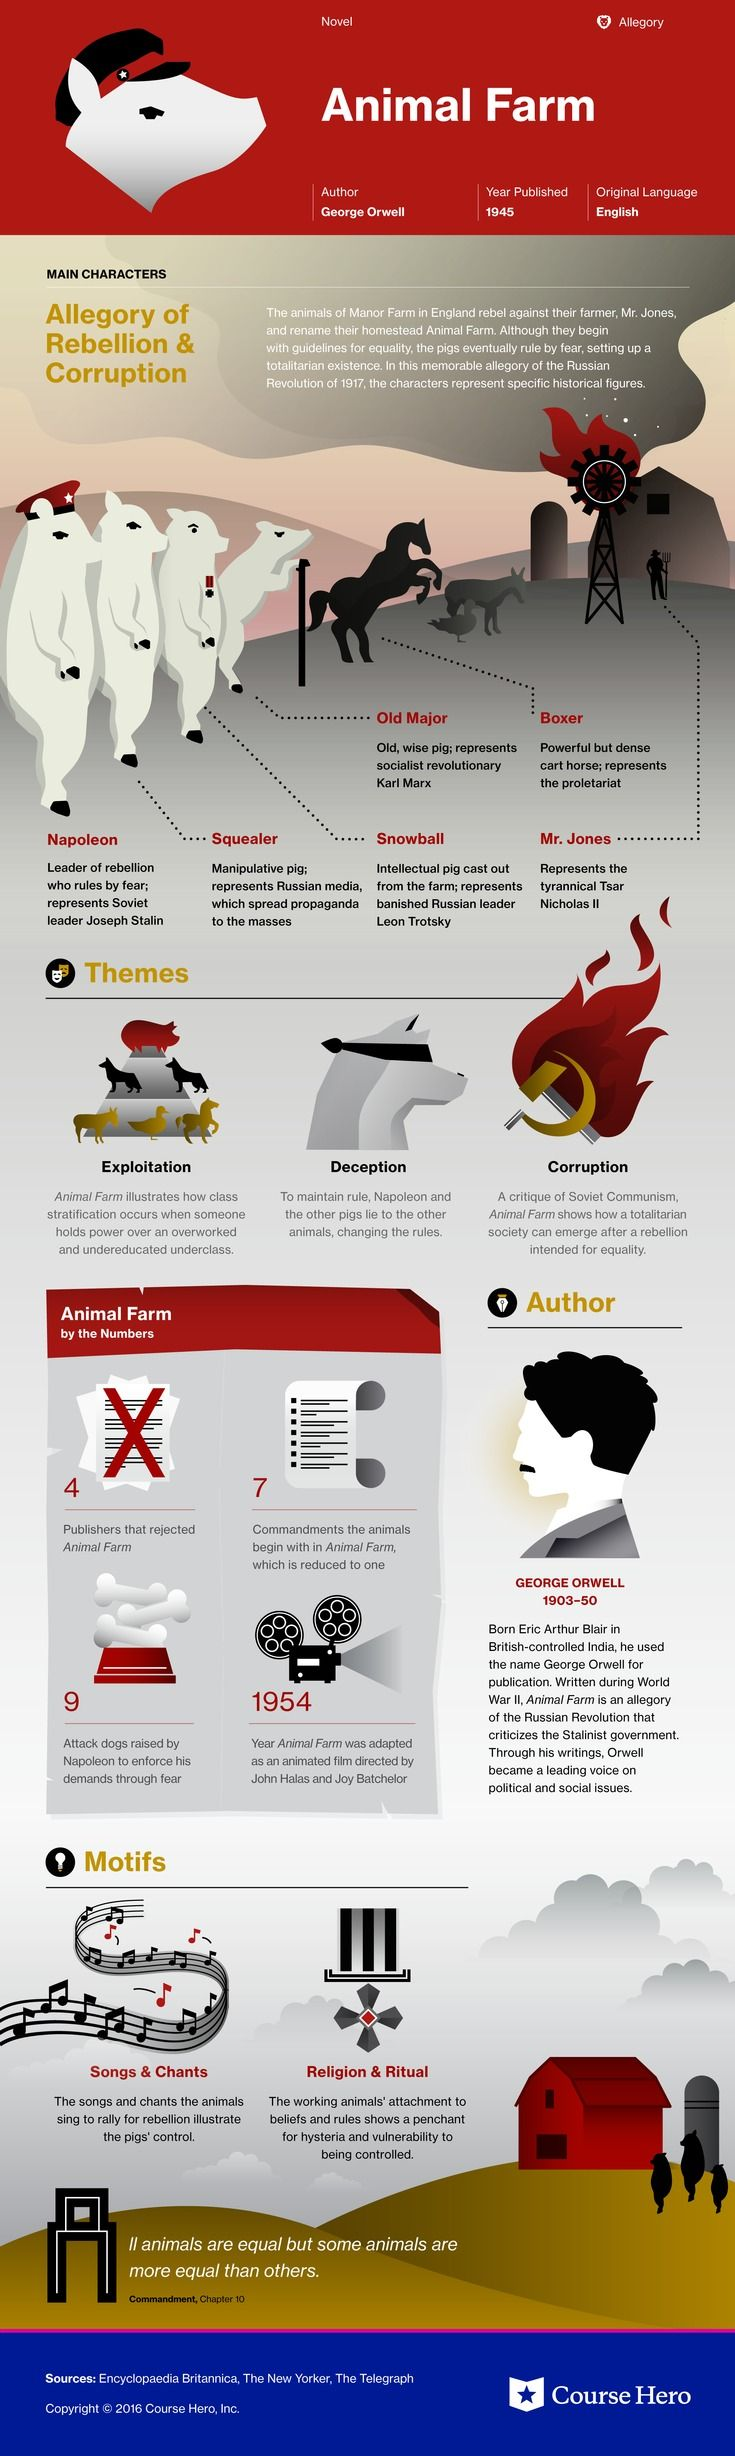 17 best ideas about animal farm novel animal farm this coursehero infographic on animal farm is both visually stunning and informative